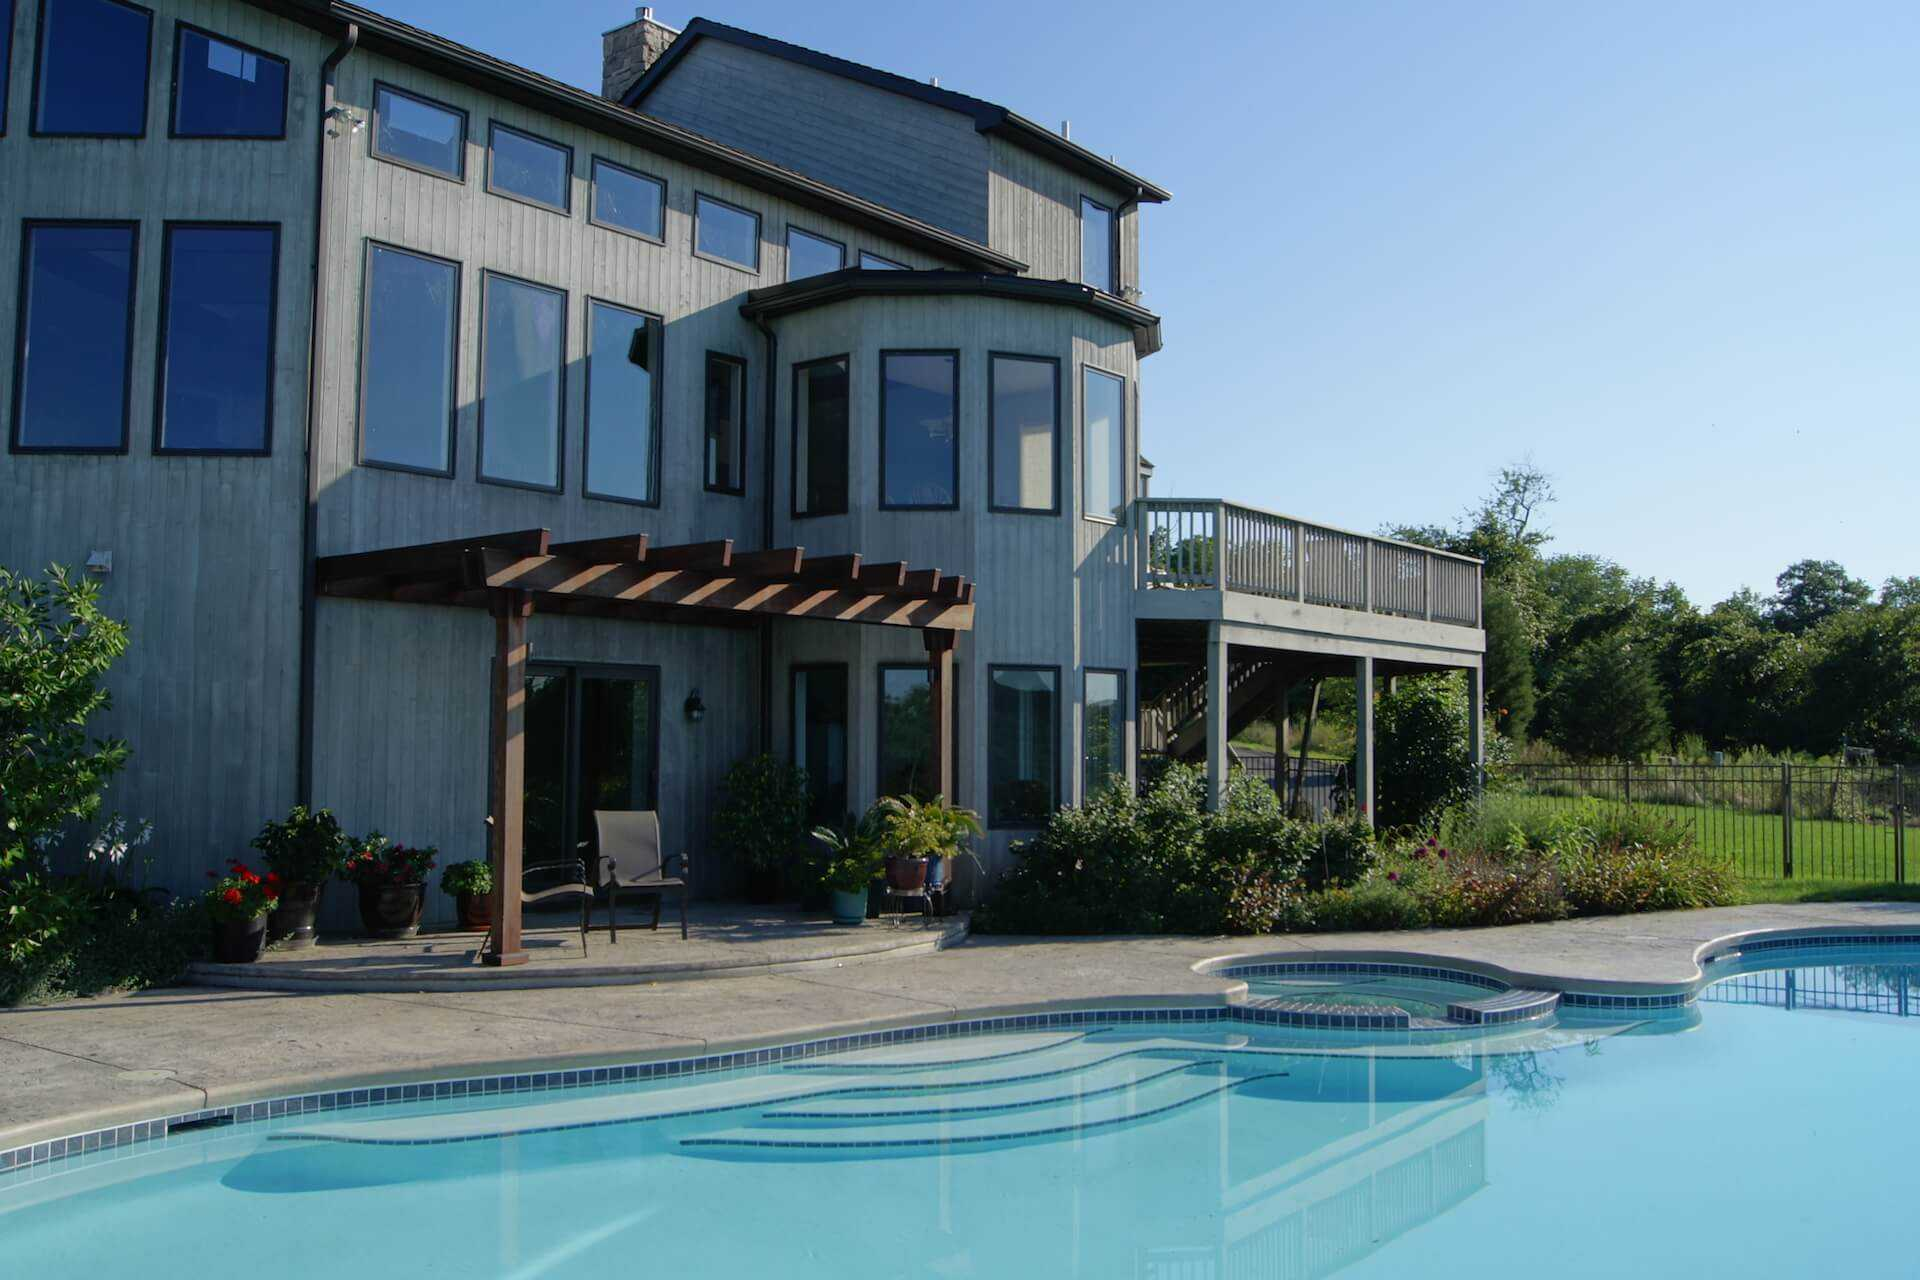 viewing the house patio behind the pool